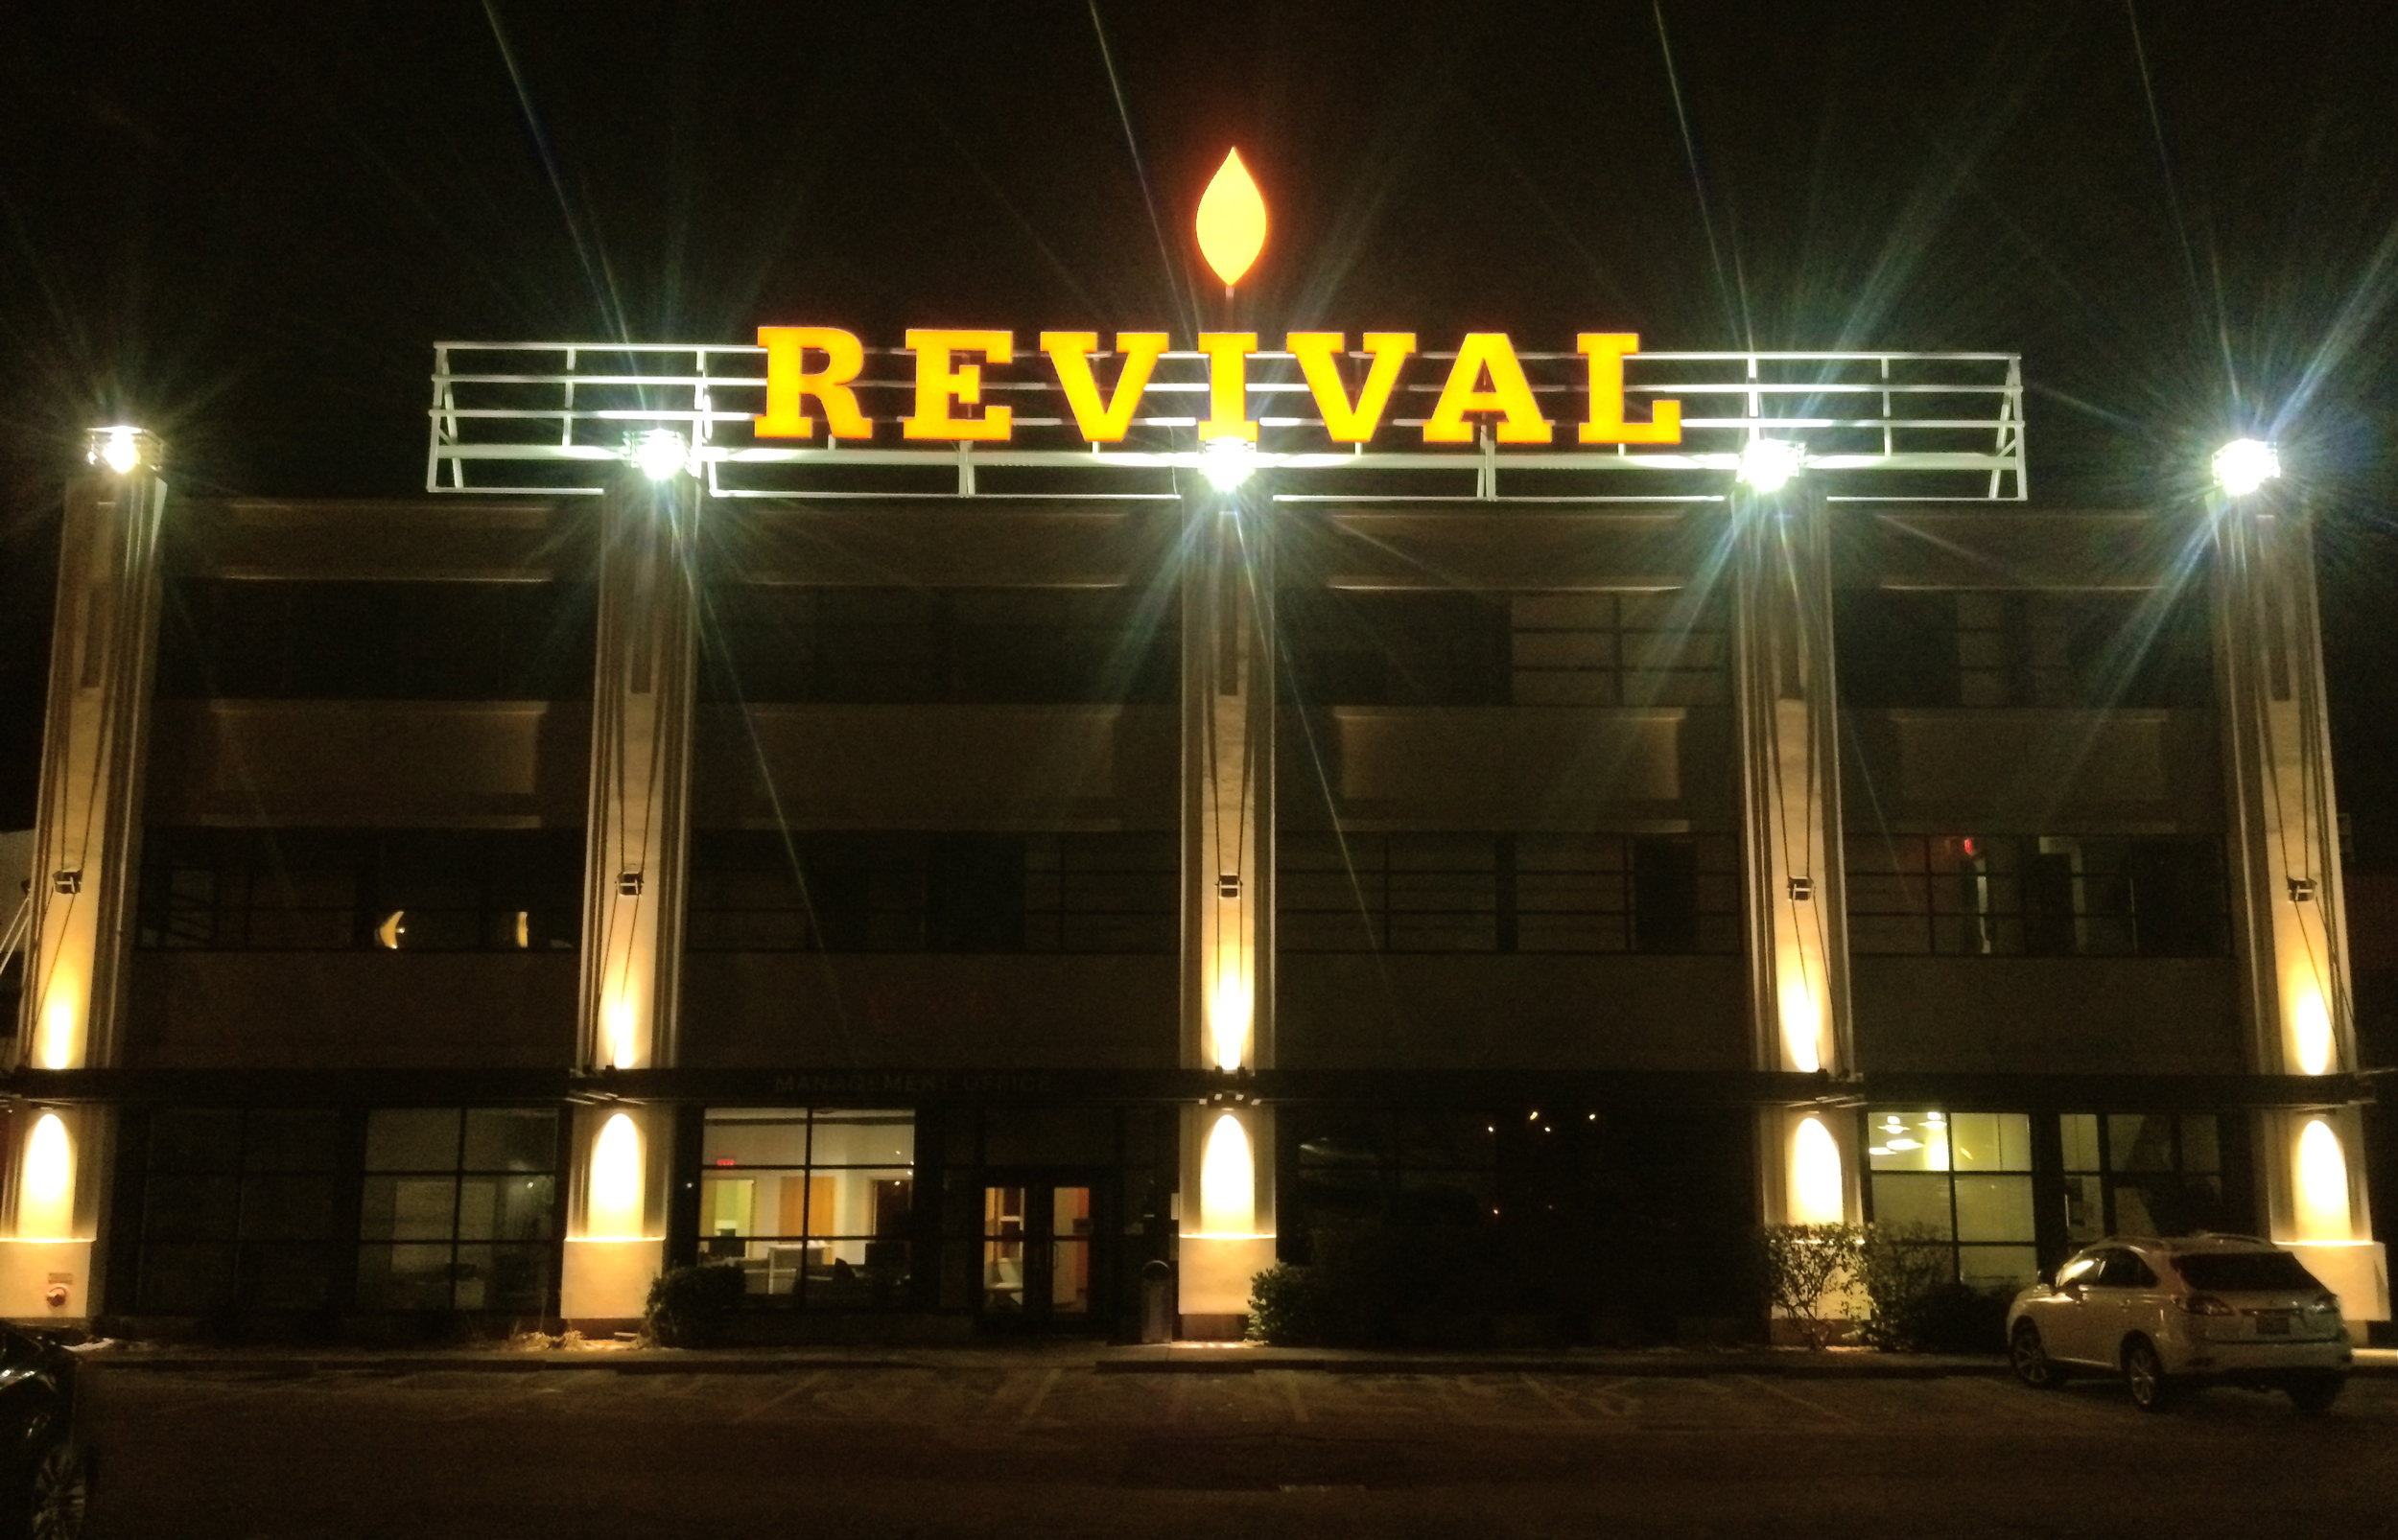 REVIVAL Film Studio's, 629 Eastern Ave., Toronto, Ontario, M4M 1E3, The Audio Producers Inc. Suite 303